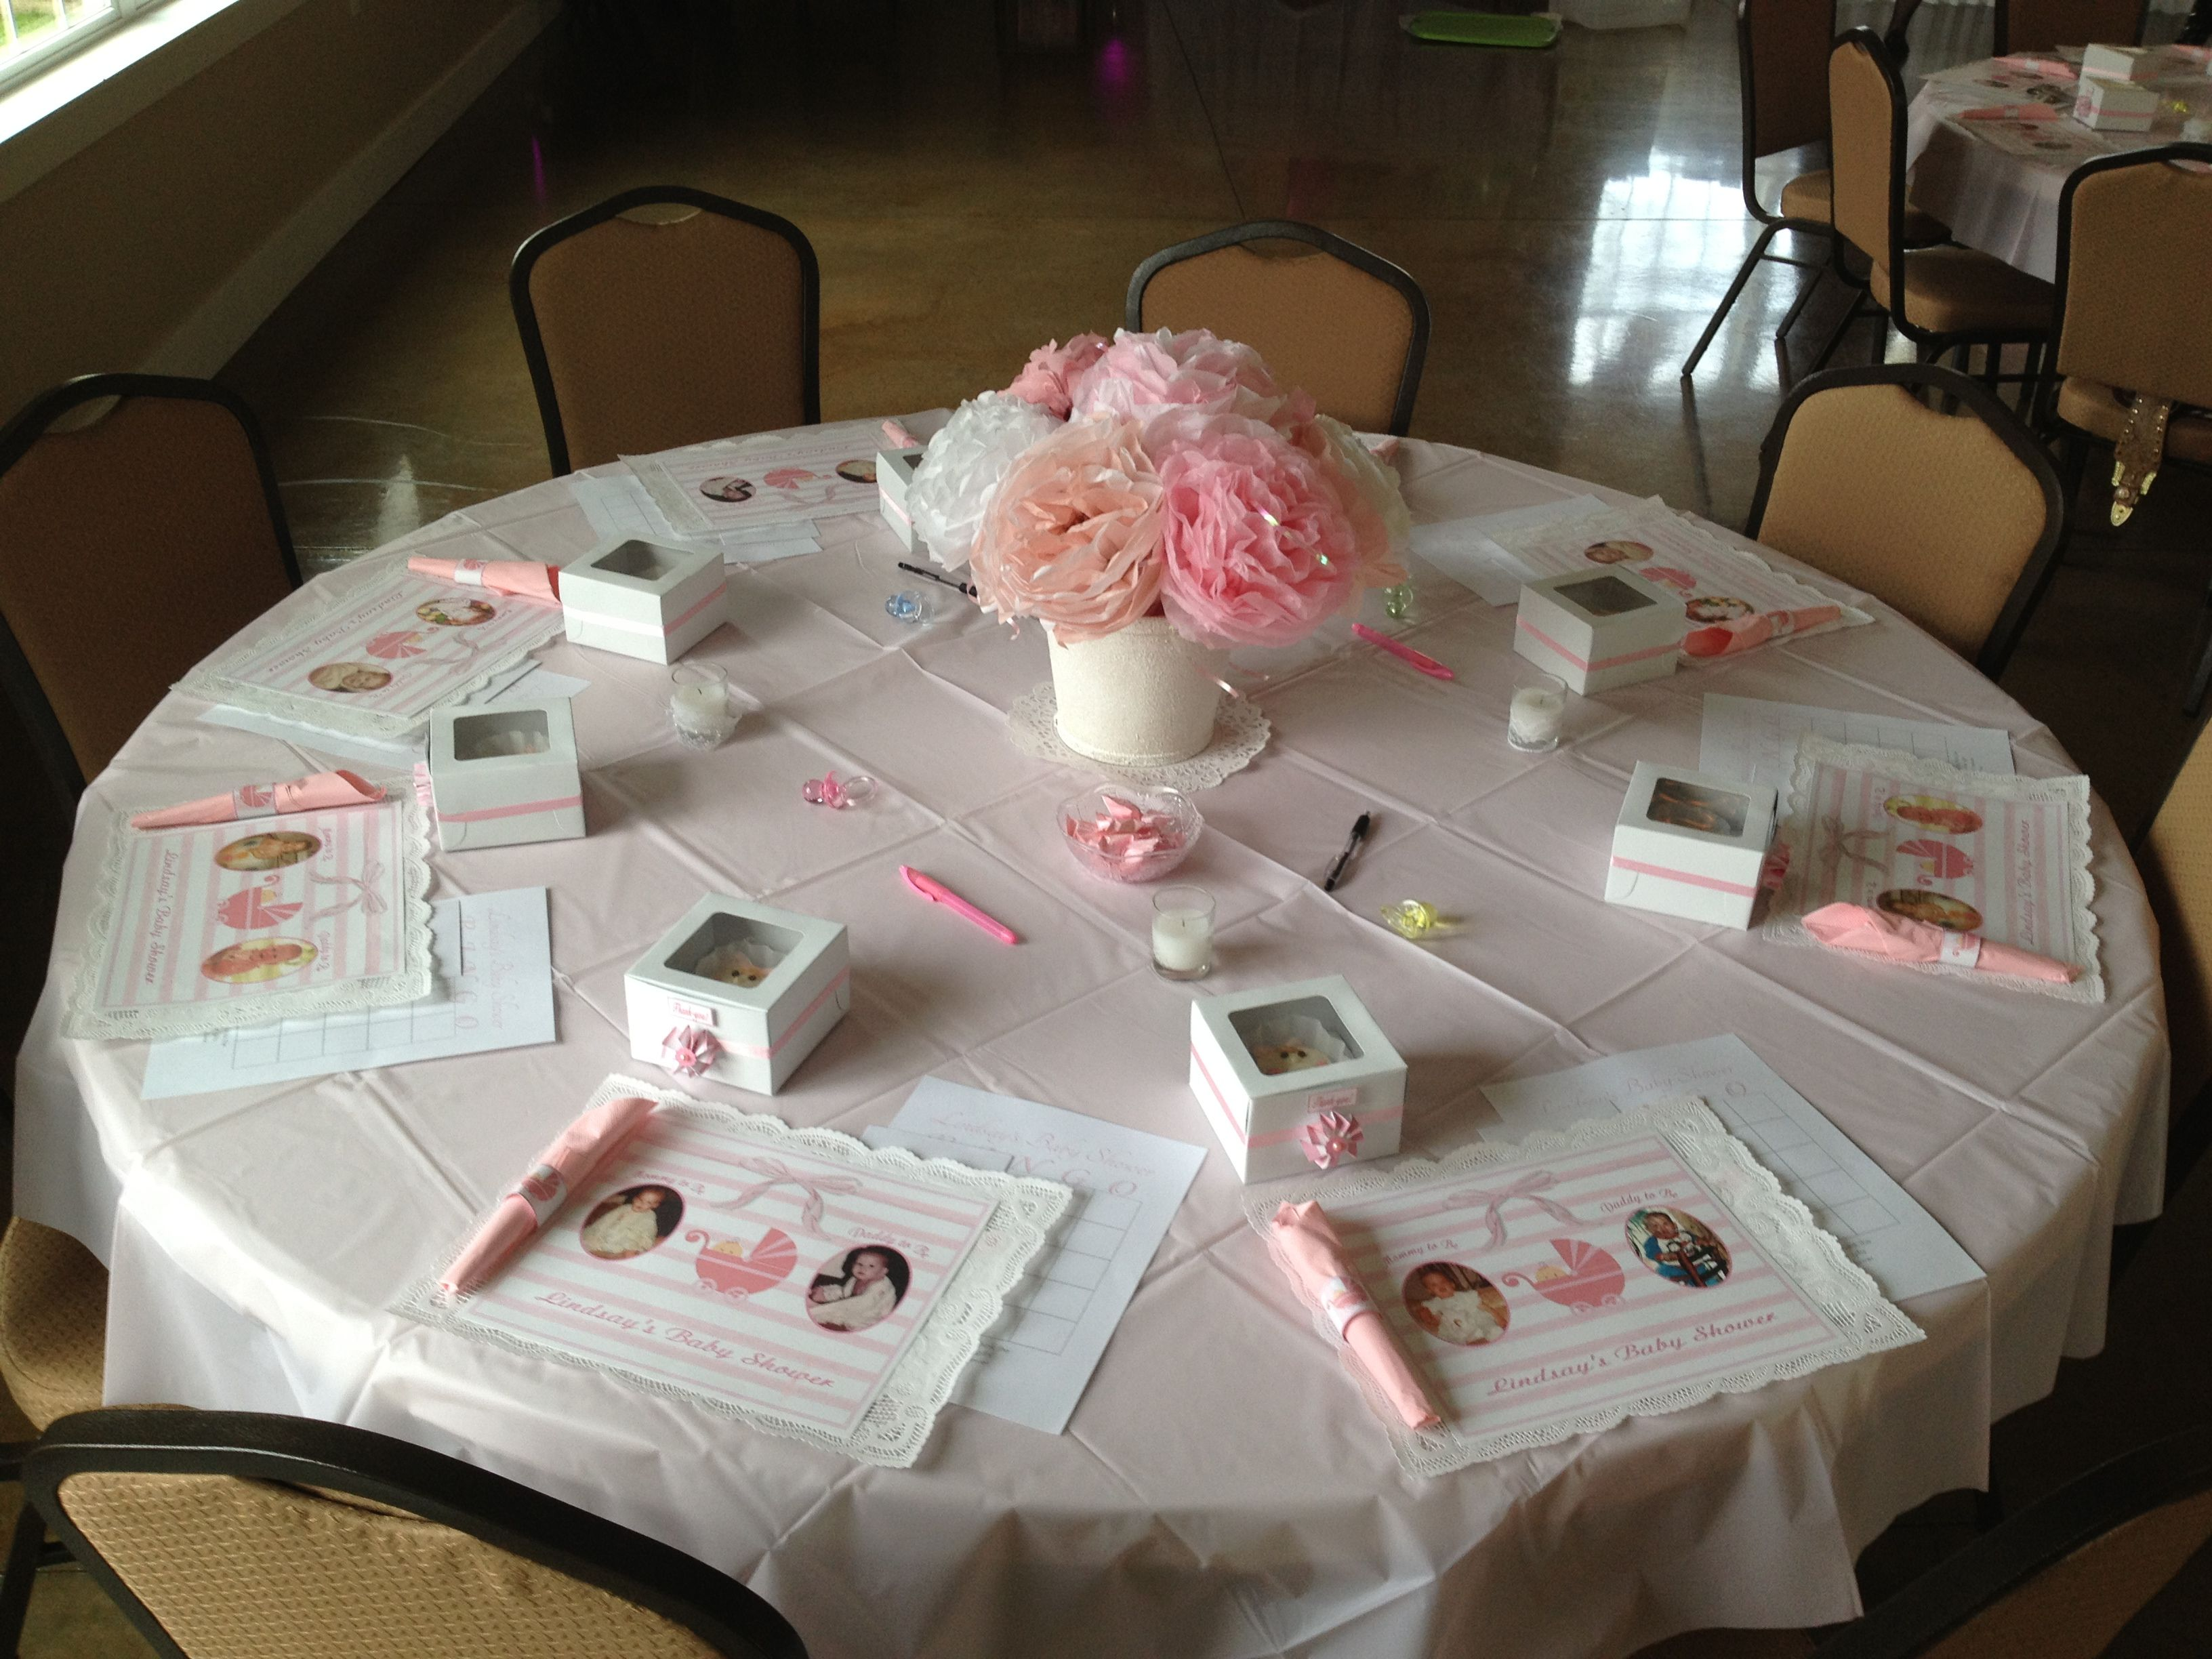 Baby Shower Table Set Up Baby Shower Fun Baby shower themes Planning a Baby Shower Diy baby shower favors Baby Shower Buffet Baby Shower Checklist Baby table Baby Shower flowers Forward Tips on organizing your baby shower tables, centerpieces, flowers and decor.